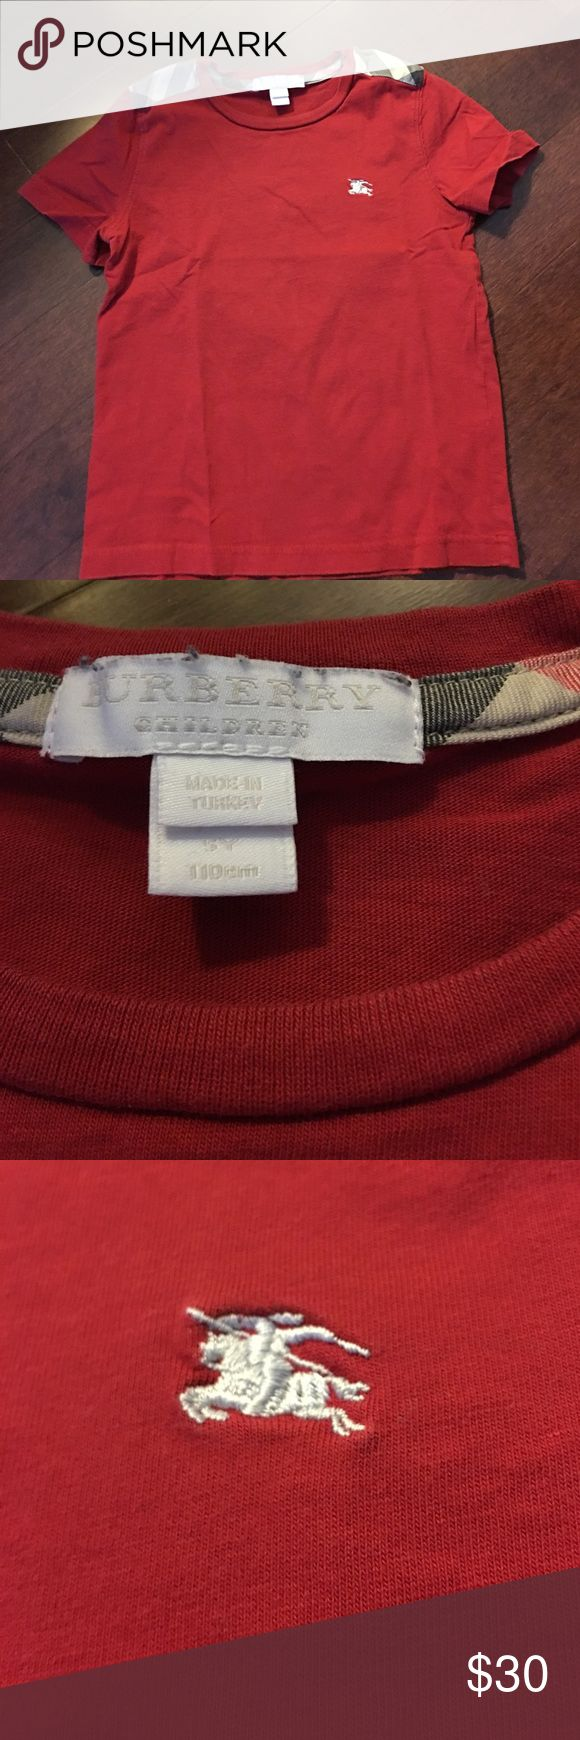 Burberry t shirt size 4 Size 5 but smaller like 4. No damage just wash and wear Burberry Shirts & Tops Tees - Short Sleeve